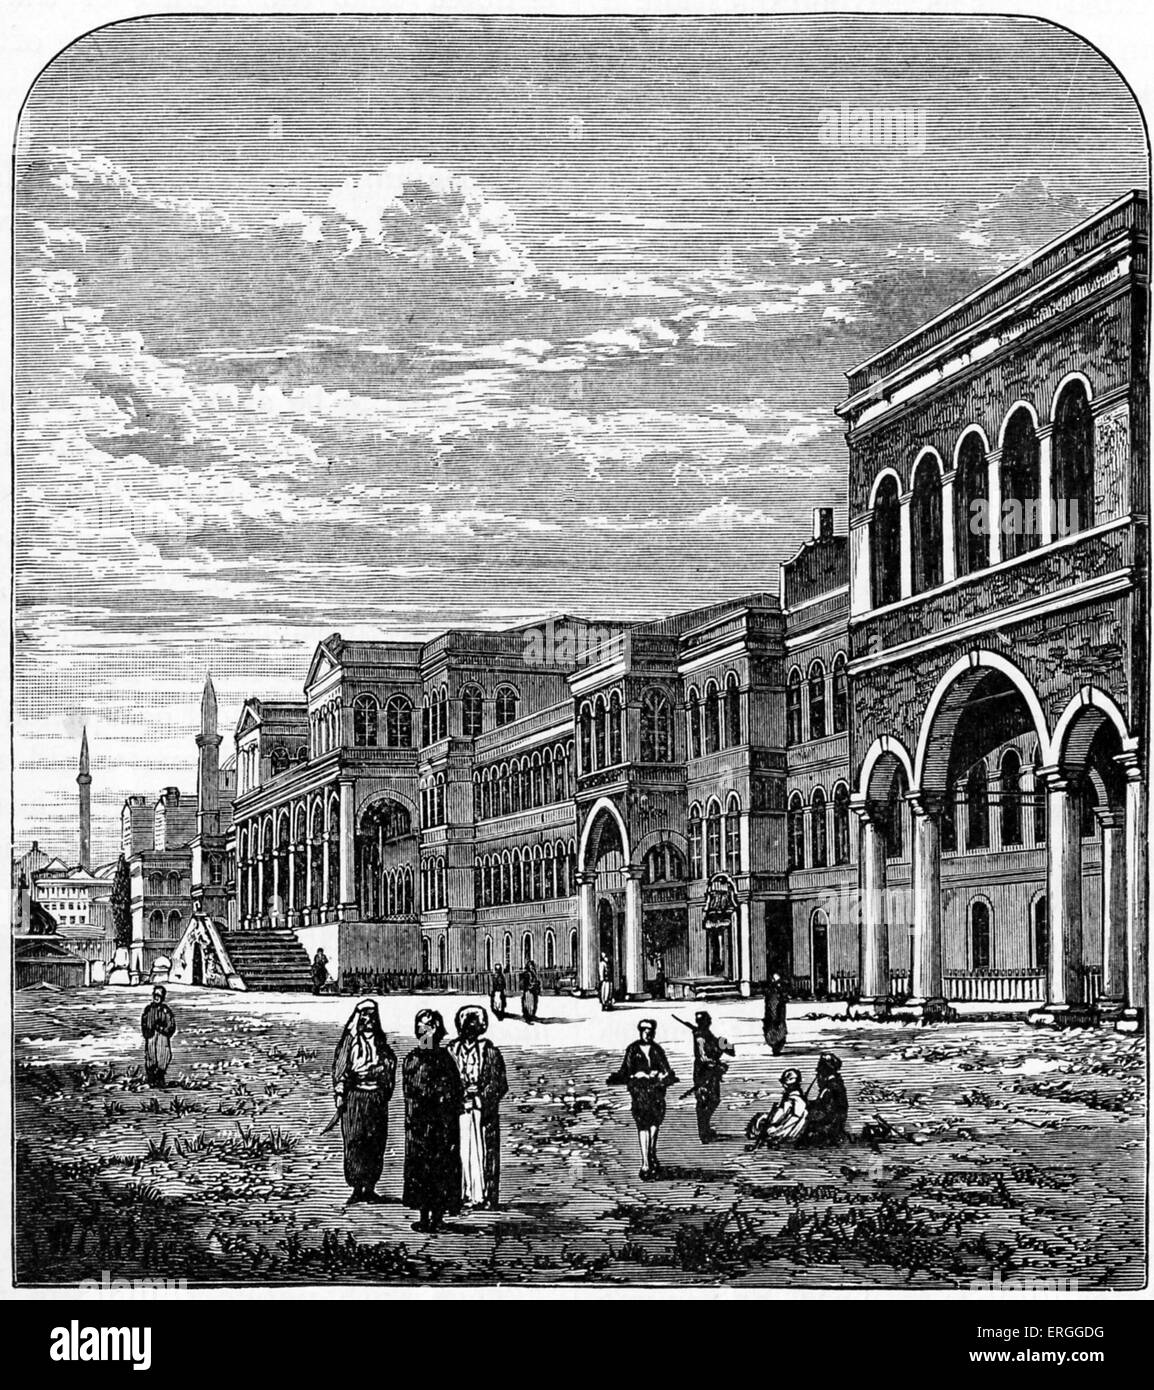 Ottoman Porte, Istanbul (Constantinople)  1876. Name for central government of the Ottoman Empire, referencing High - Stock Image